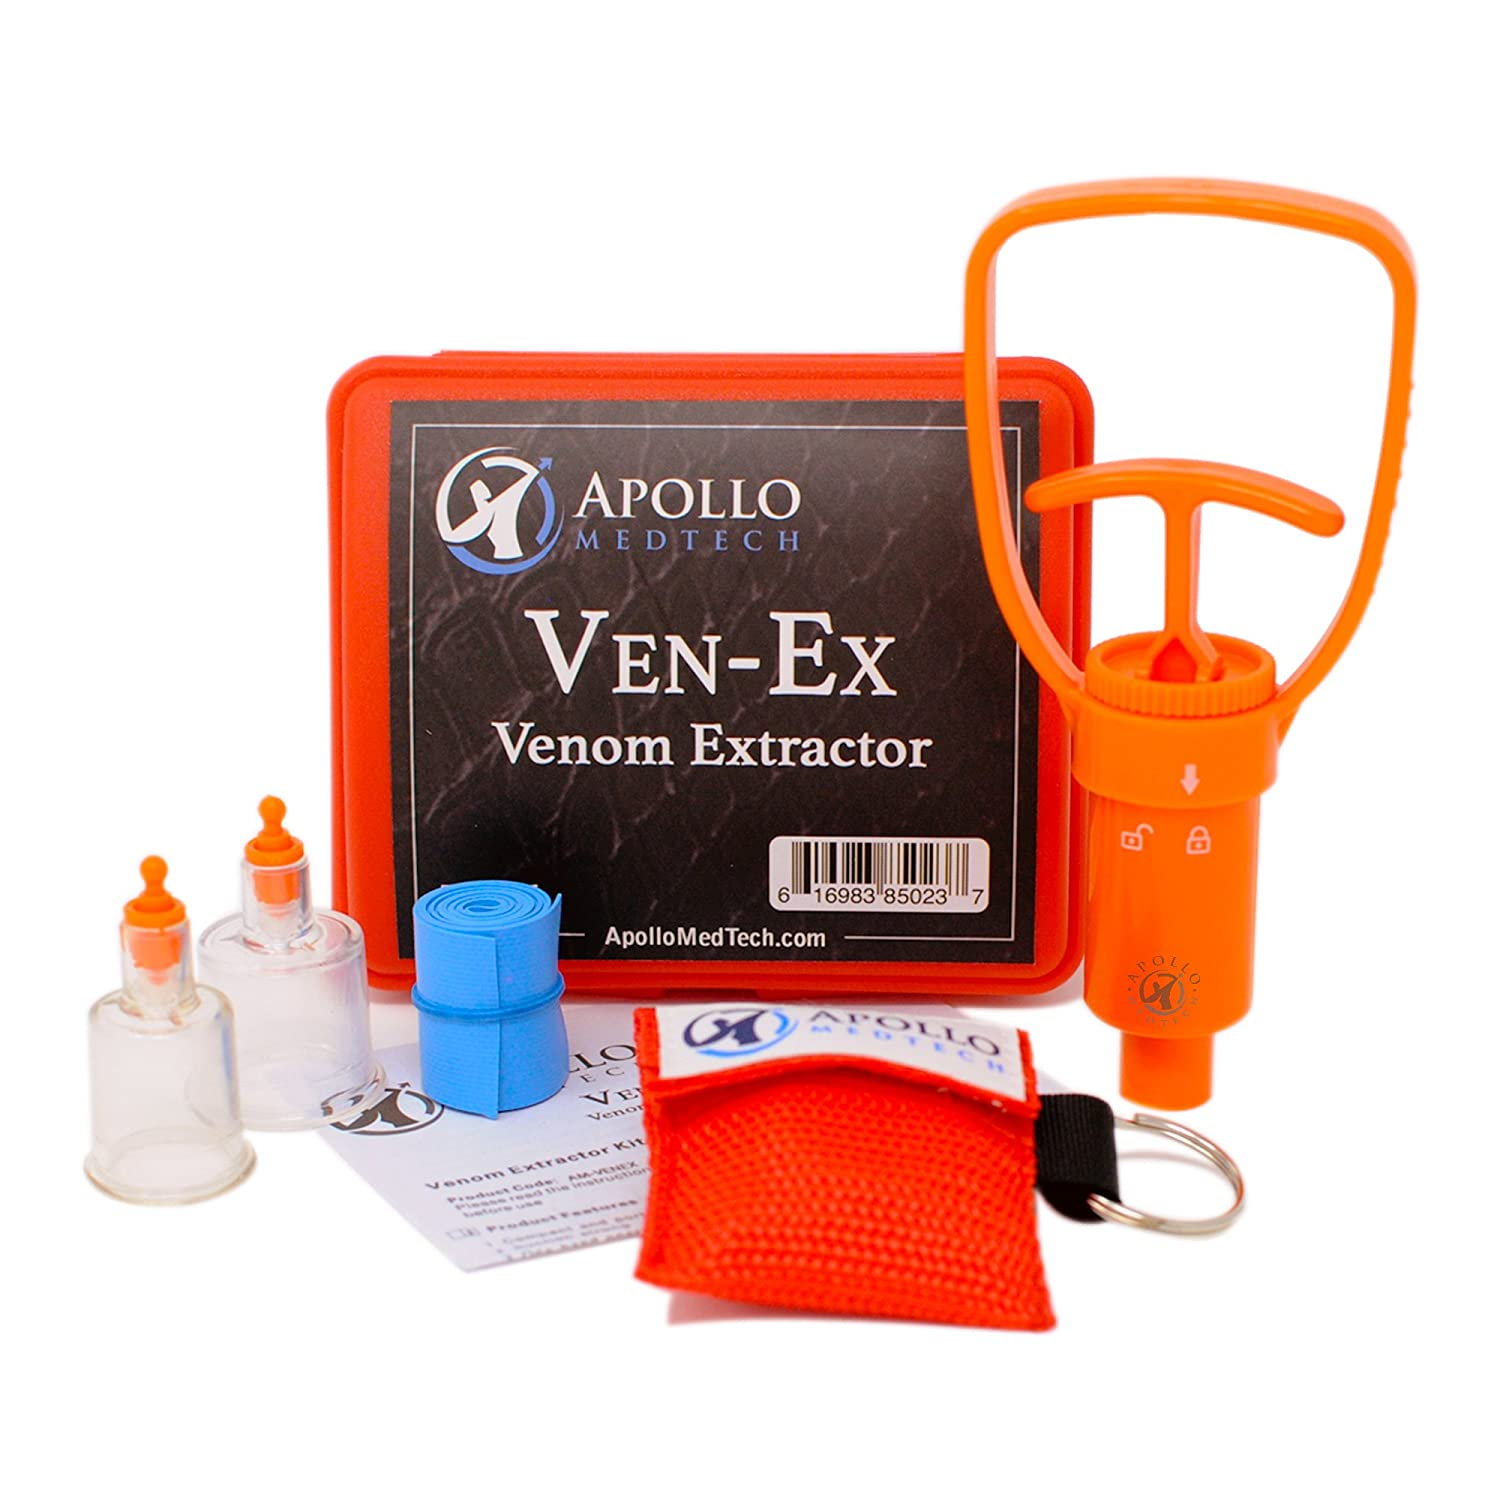 Ven-Ex Snake Bite Kit, Bee Sting Kit, Emergency First Aid Supplies, Venom Extractor Suction Pump, Bite and Sting First Aid for Hiking, Backpacking and Camping. Includes BONUS CPR face shield. Apollo MedTech